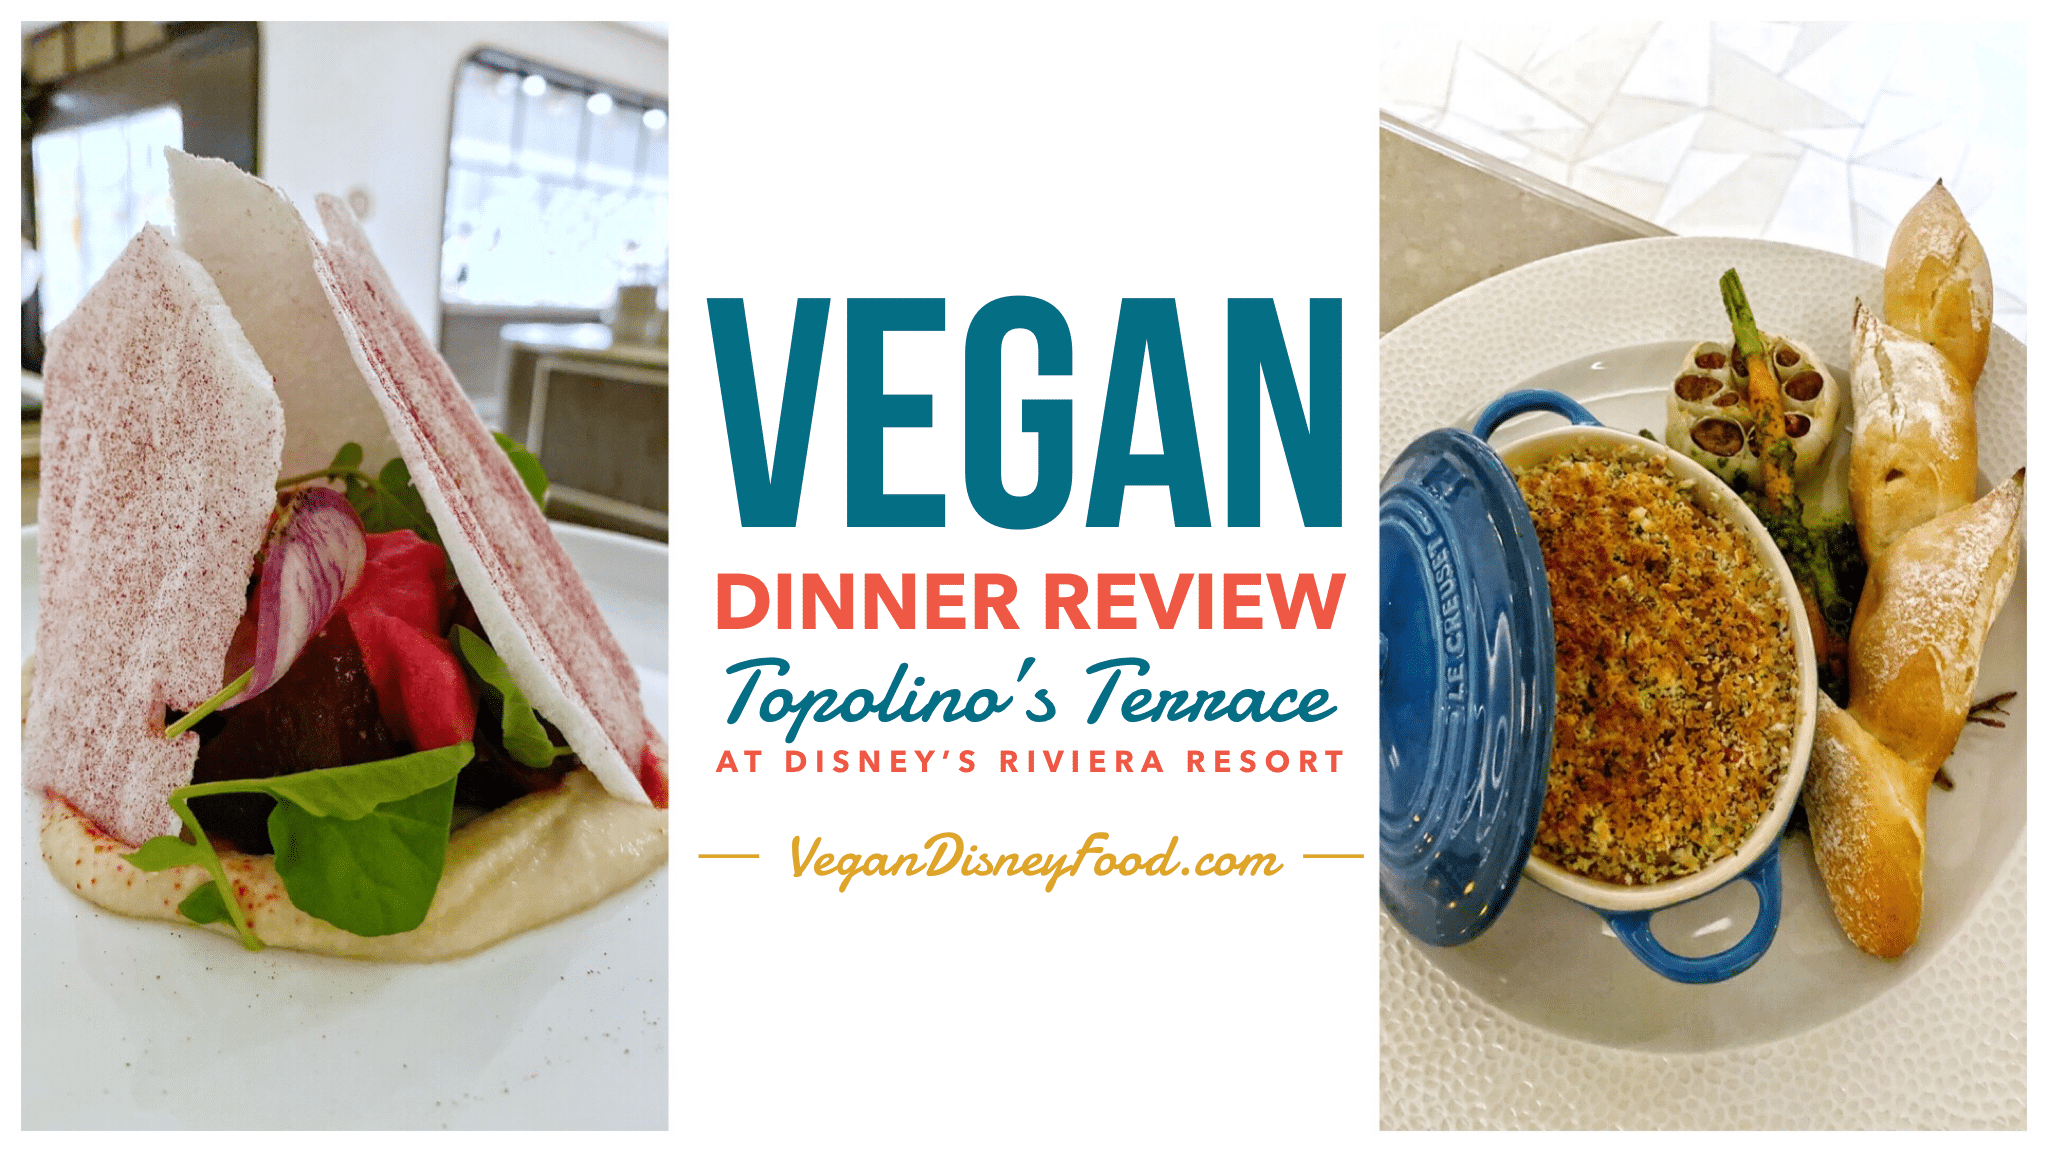 Topolino's Terrace Vegan Dinner Review at Disney's Riviera Resort in Walt Disney World